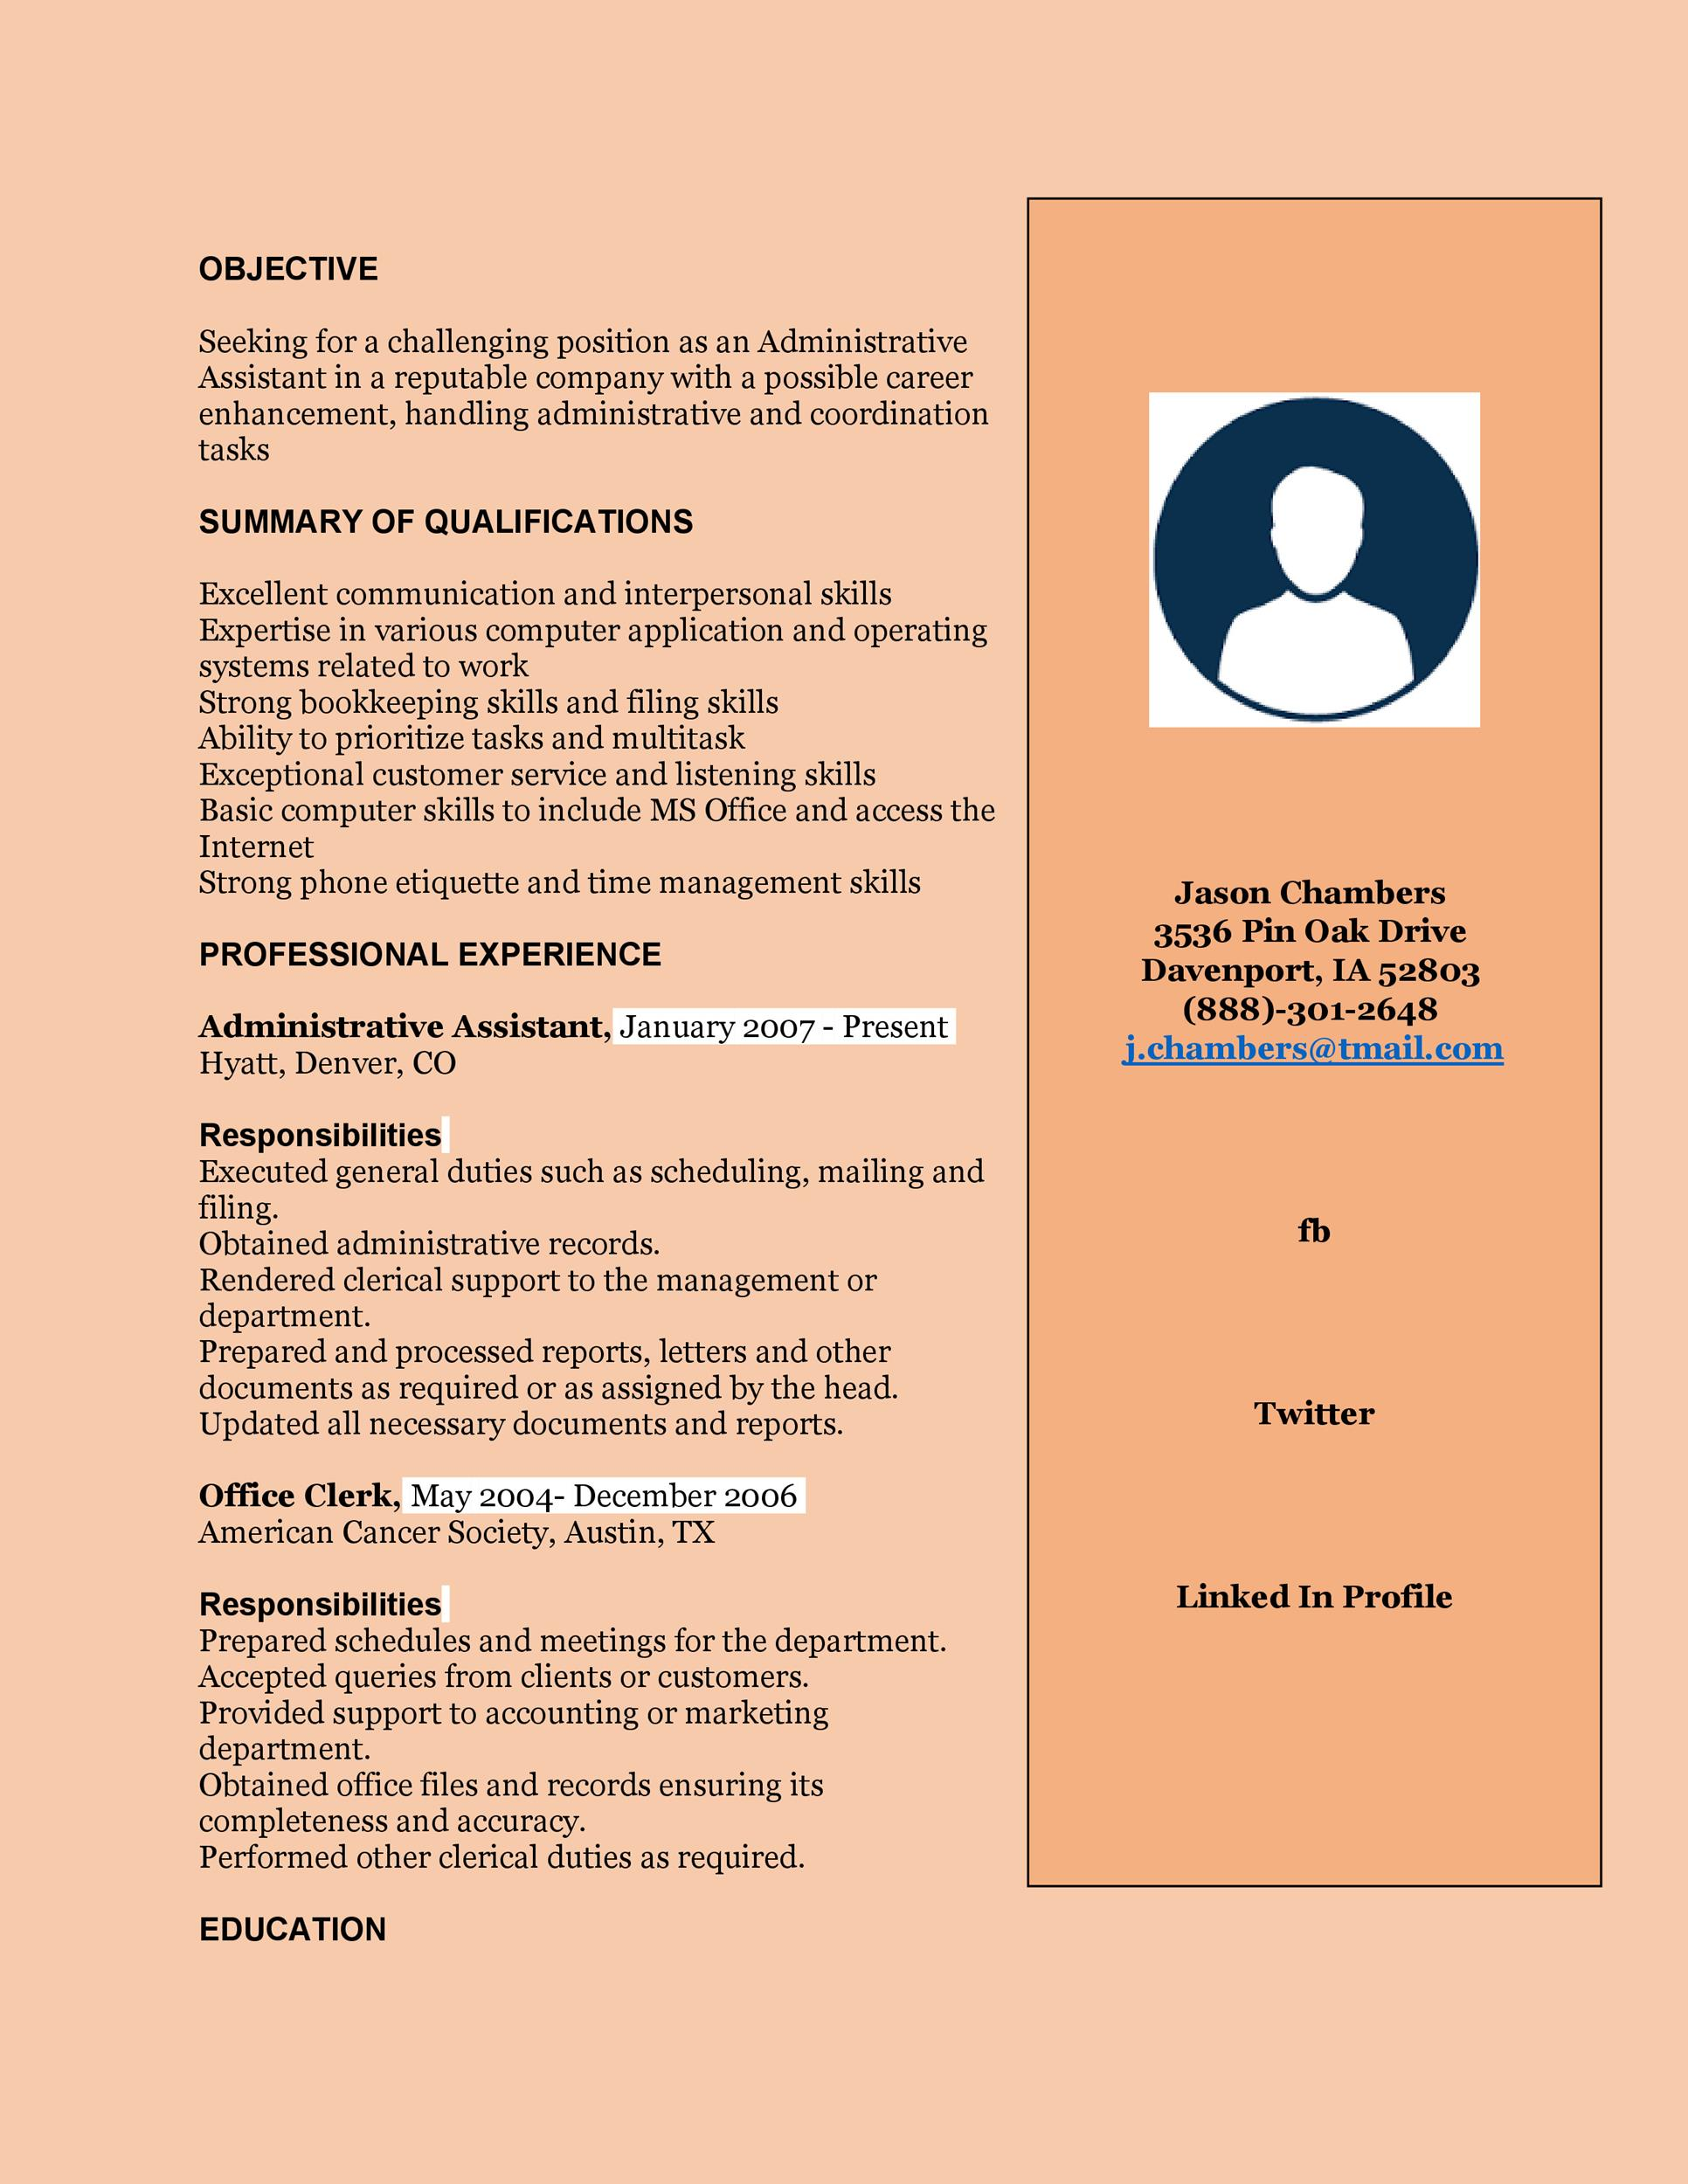 Free Administrative Assistant Resume Template 16